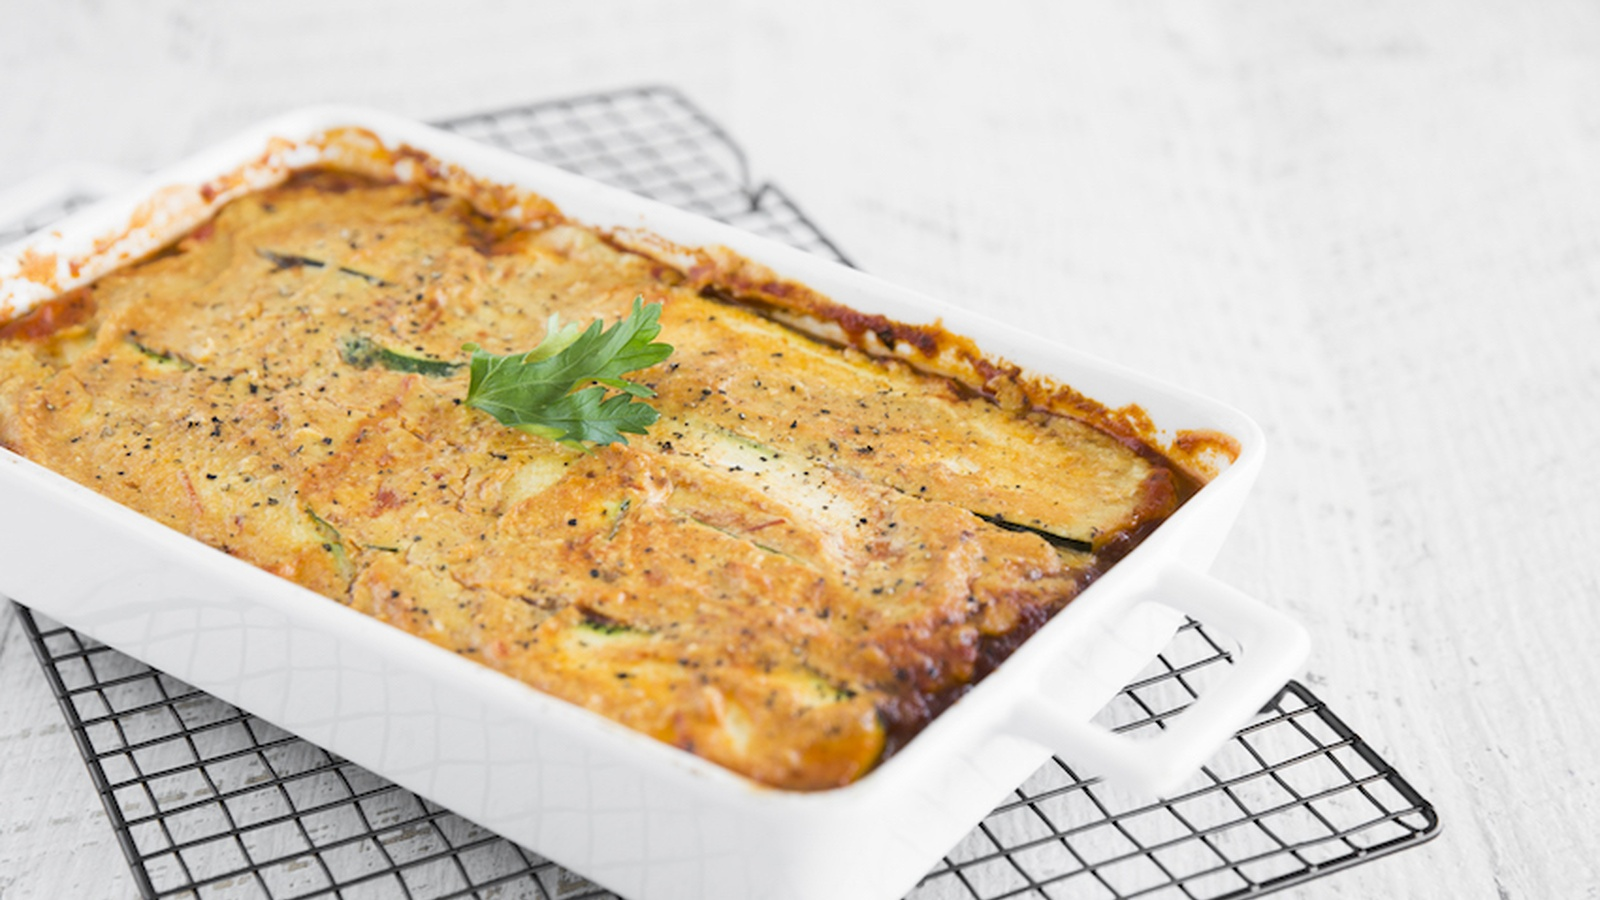 Zucchini Lasagne With Cashew Cheese Even Meat-Lovers Will Love (Dairy-Free, Gluten-Free Recipe)